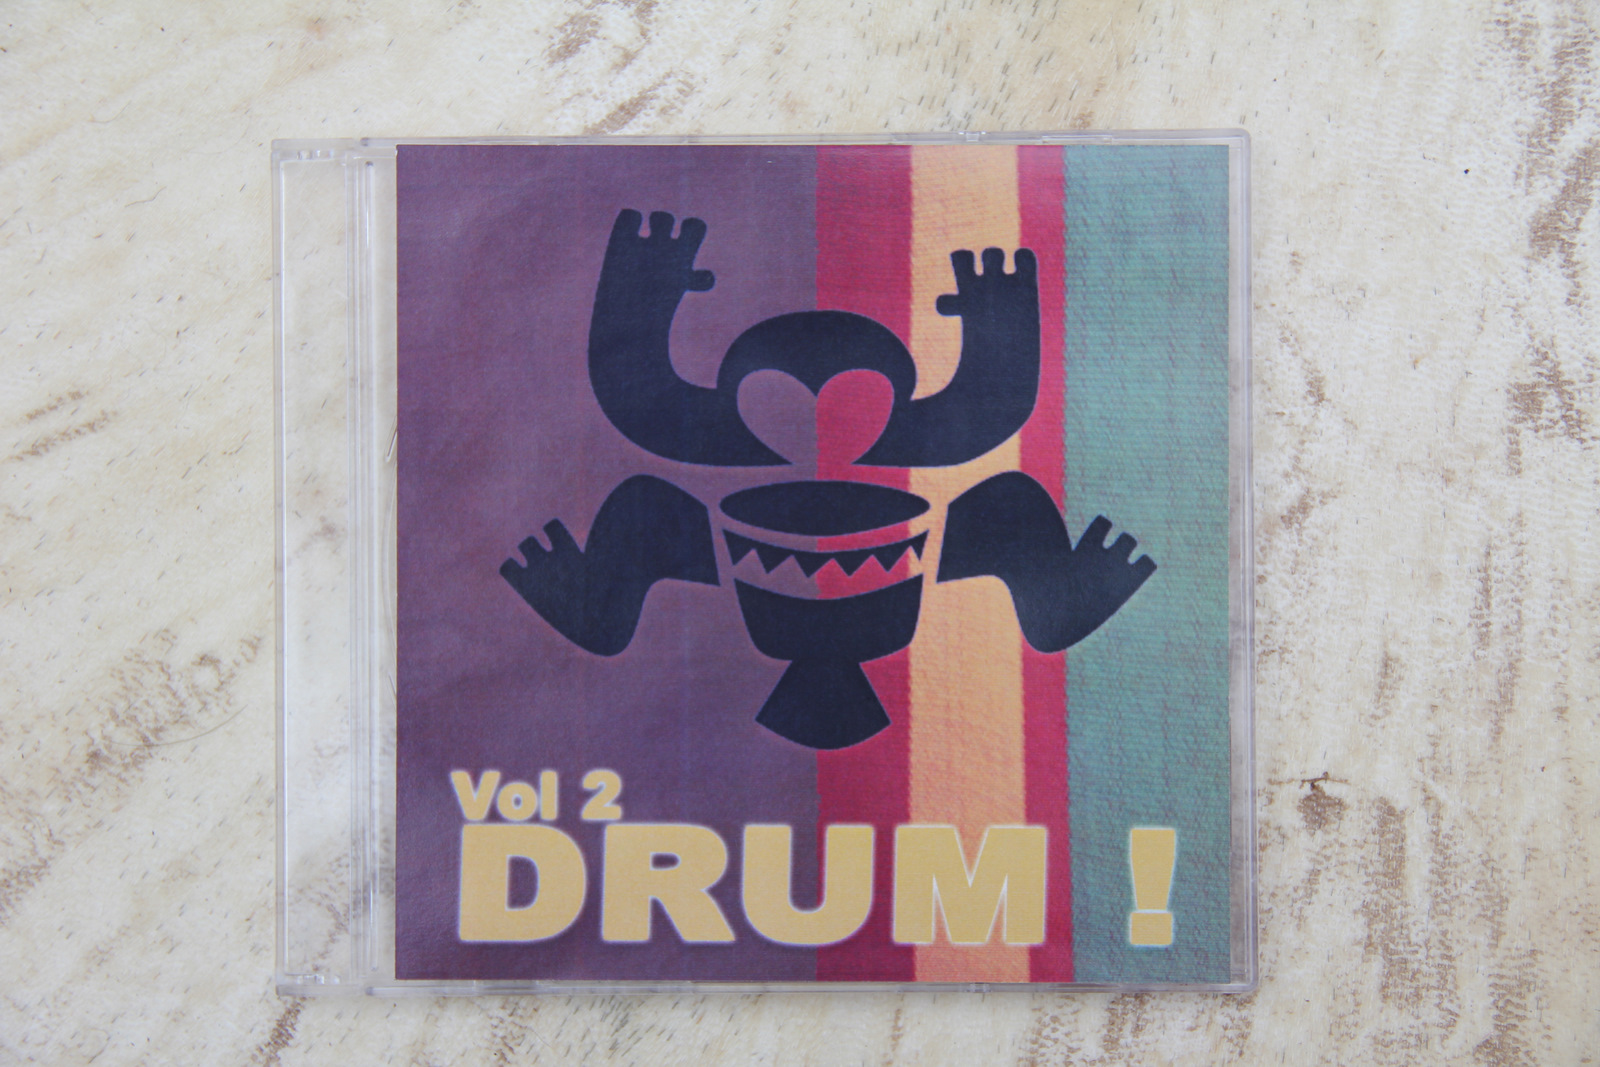 cover of CD with Melbourne Djembe logo playing djembe